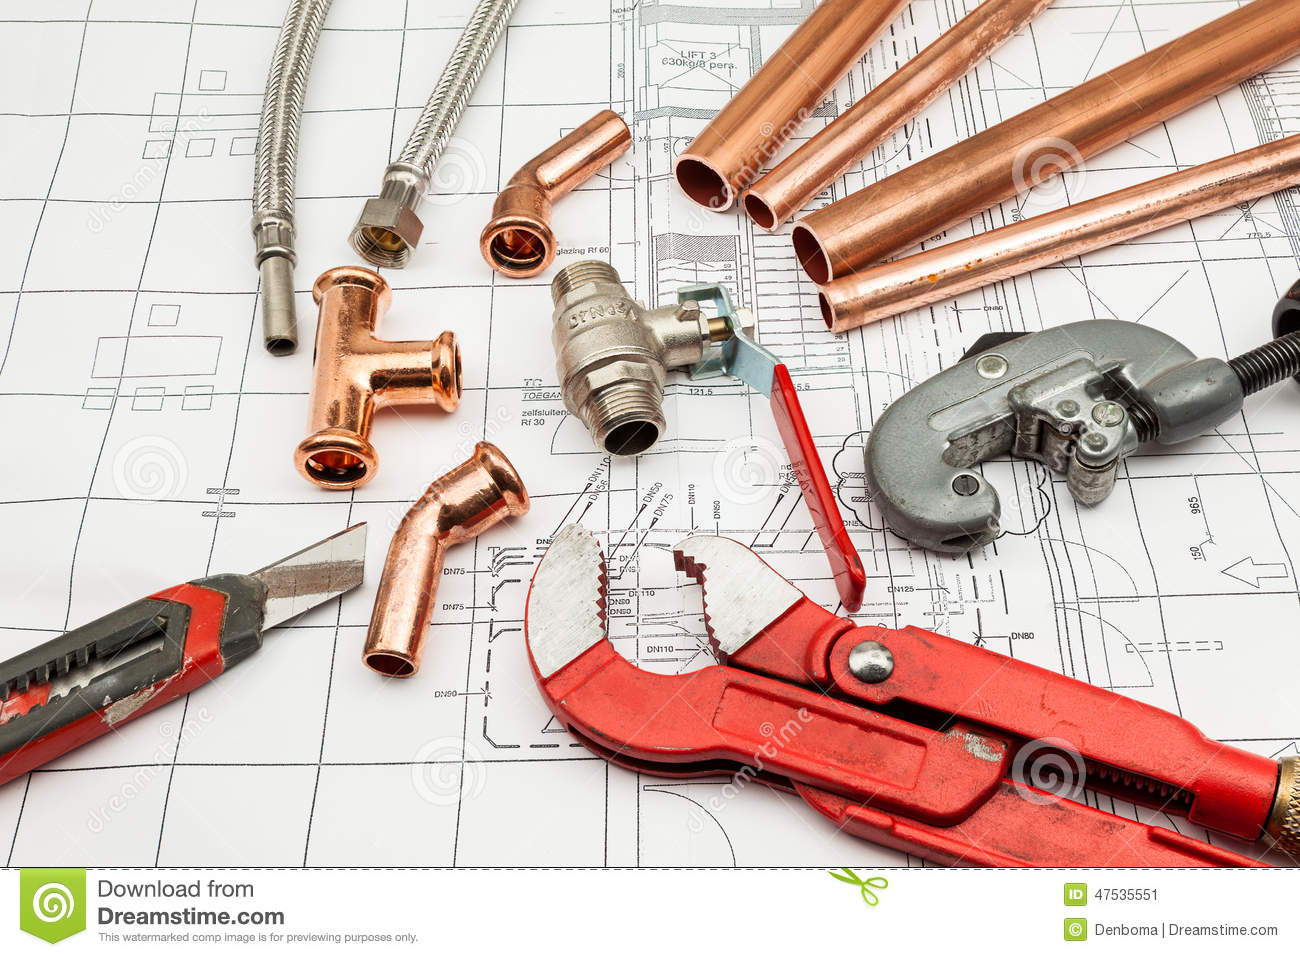 Plumbing tools arranged on house plans royalty free stock for Building design tool online